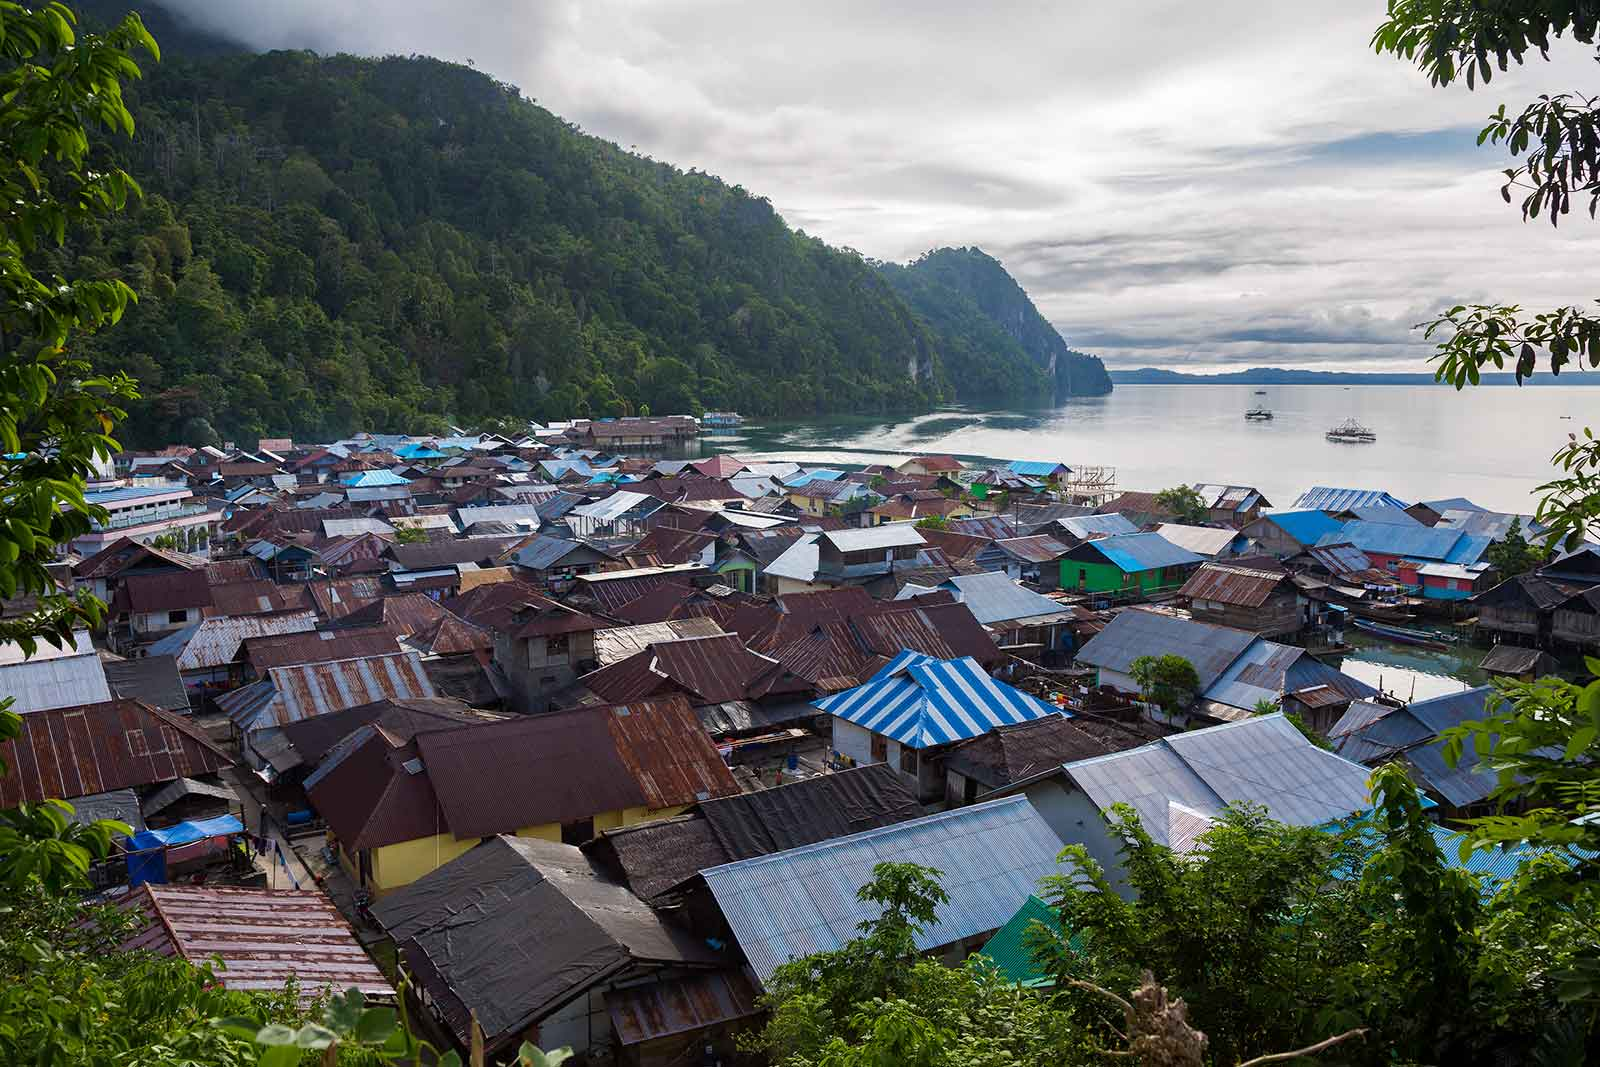 Maluku Islands: As seen here, Sawai village is located far away from civilisation and therefore not visited by tourists often.